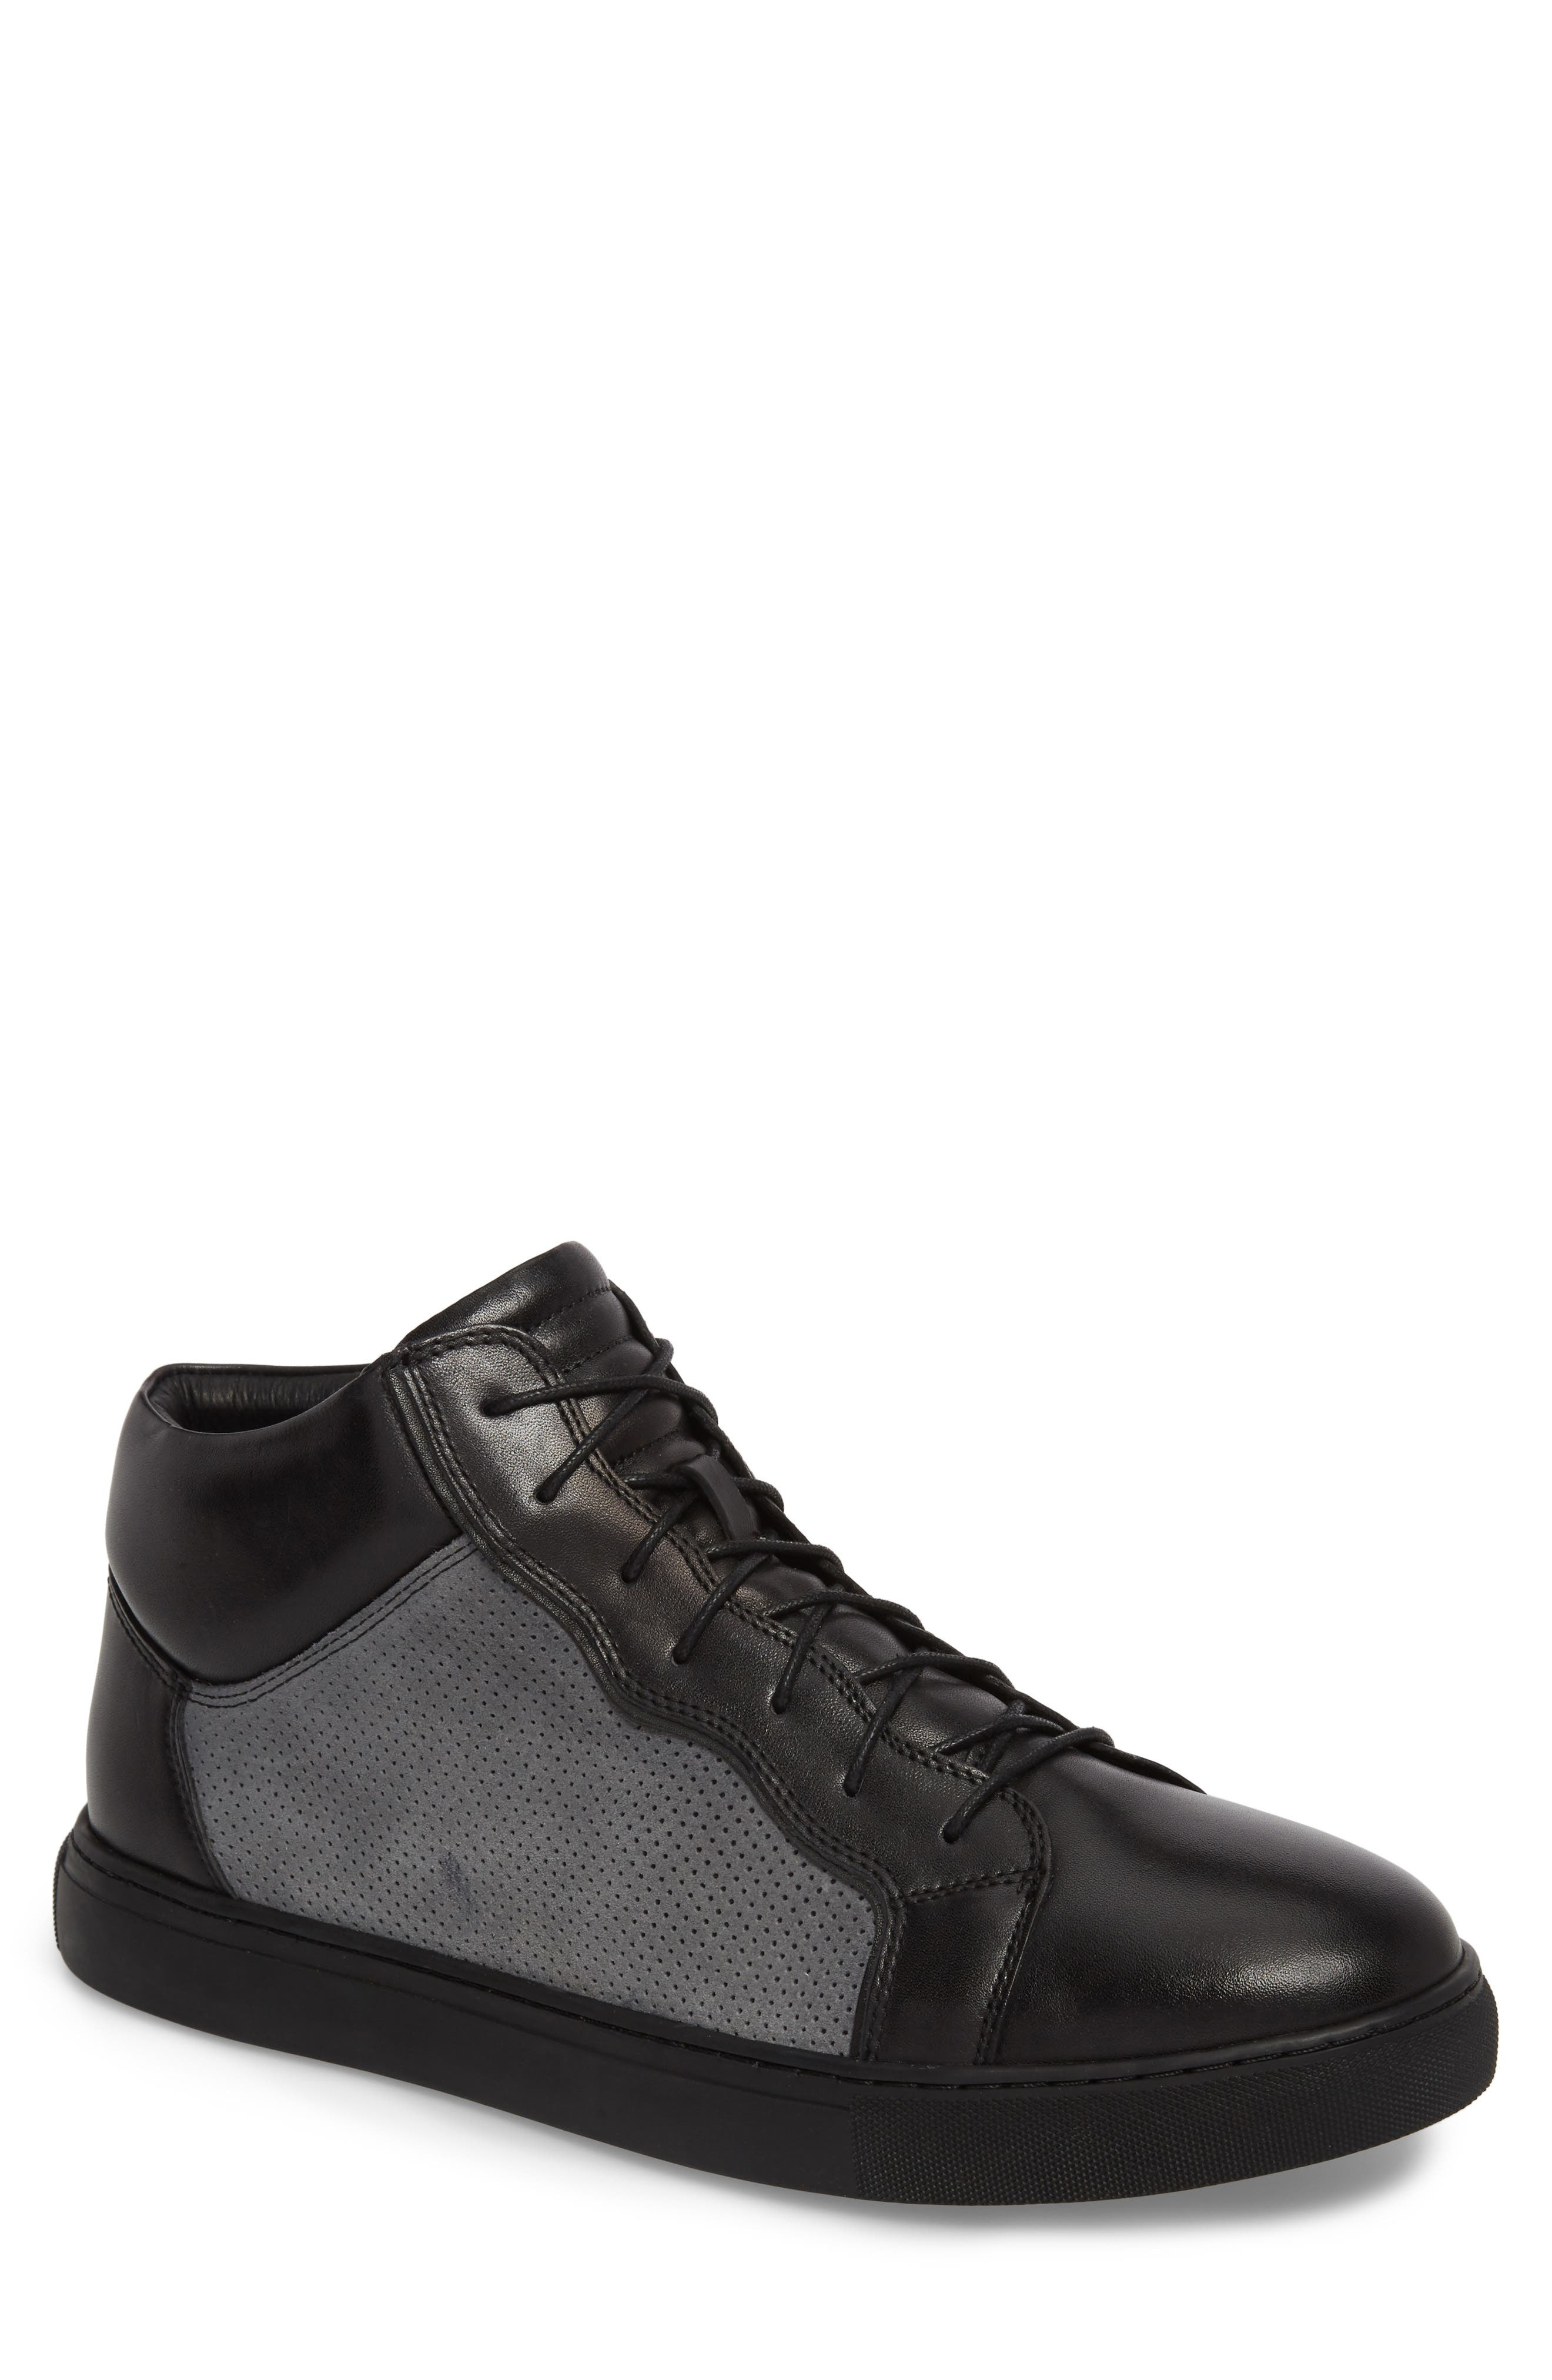 Twist Perforated High Top Sneaker,                         Main,                         color, BLACK LEATHER/ SUEDE